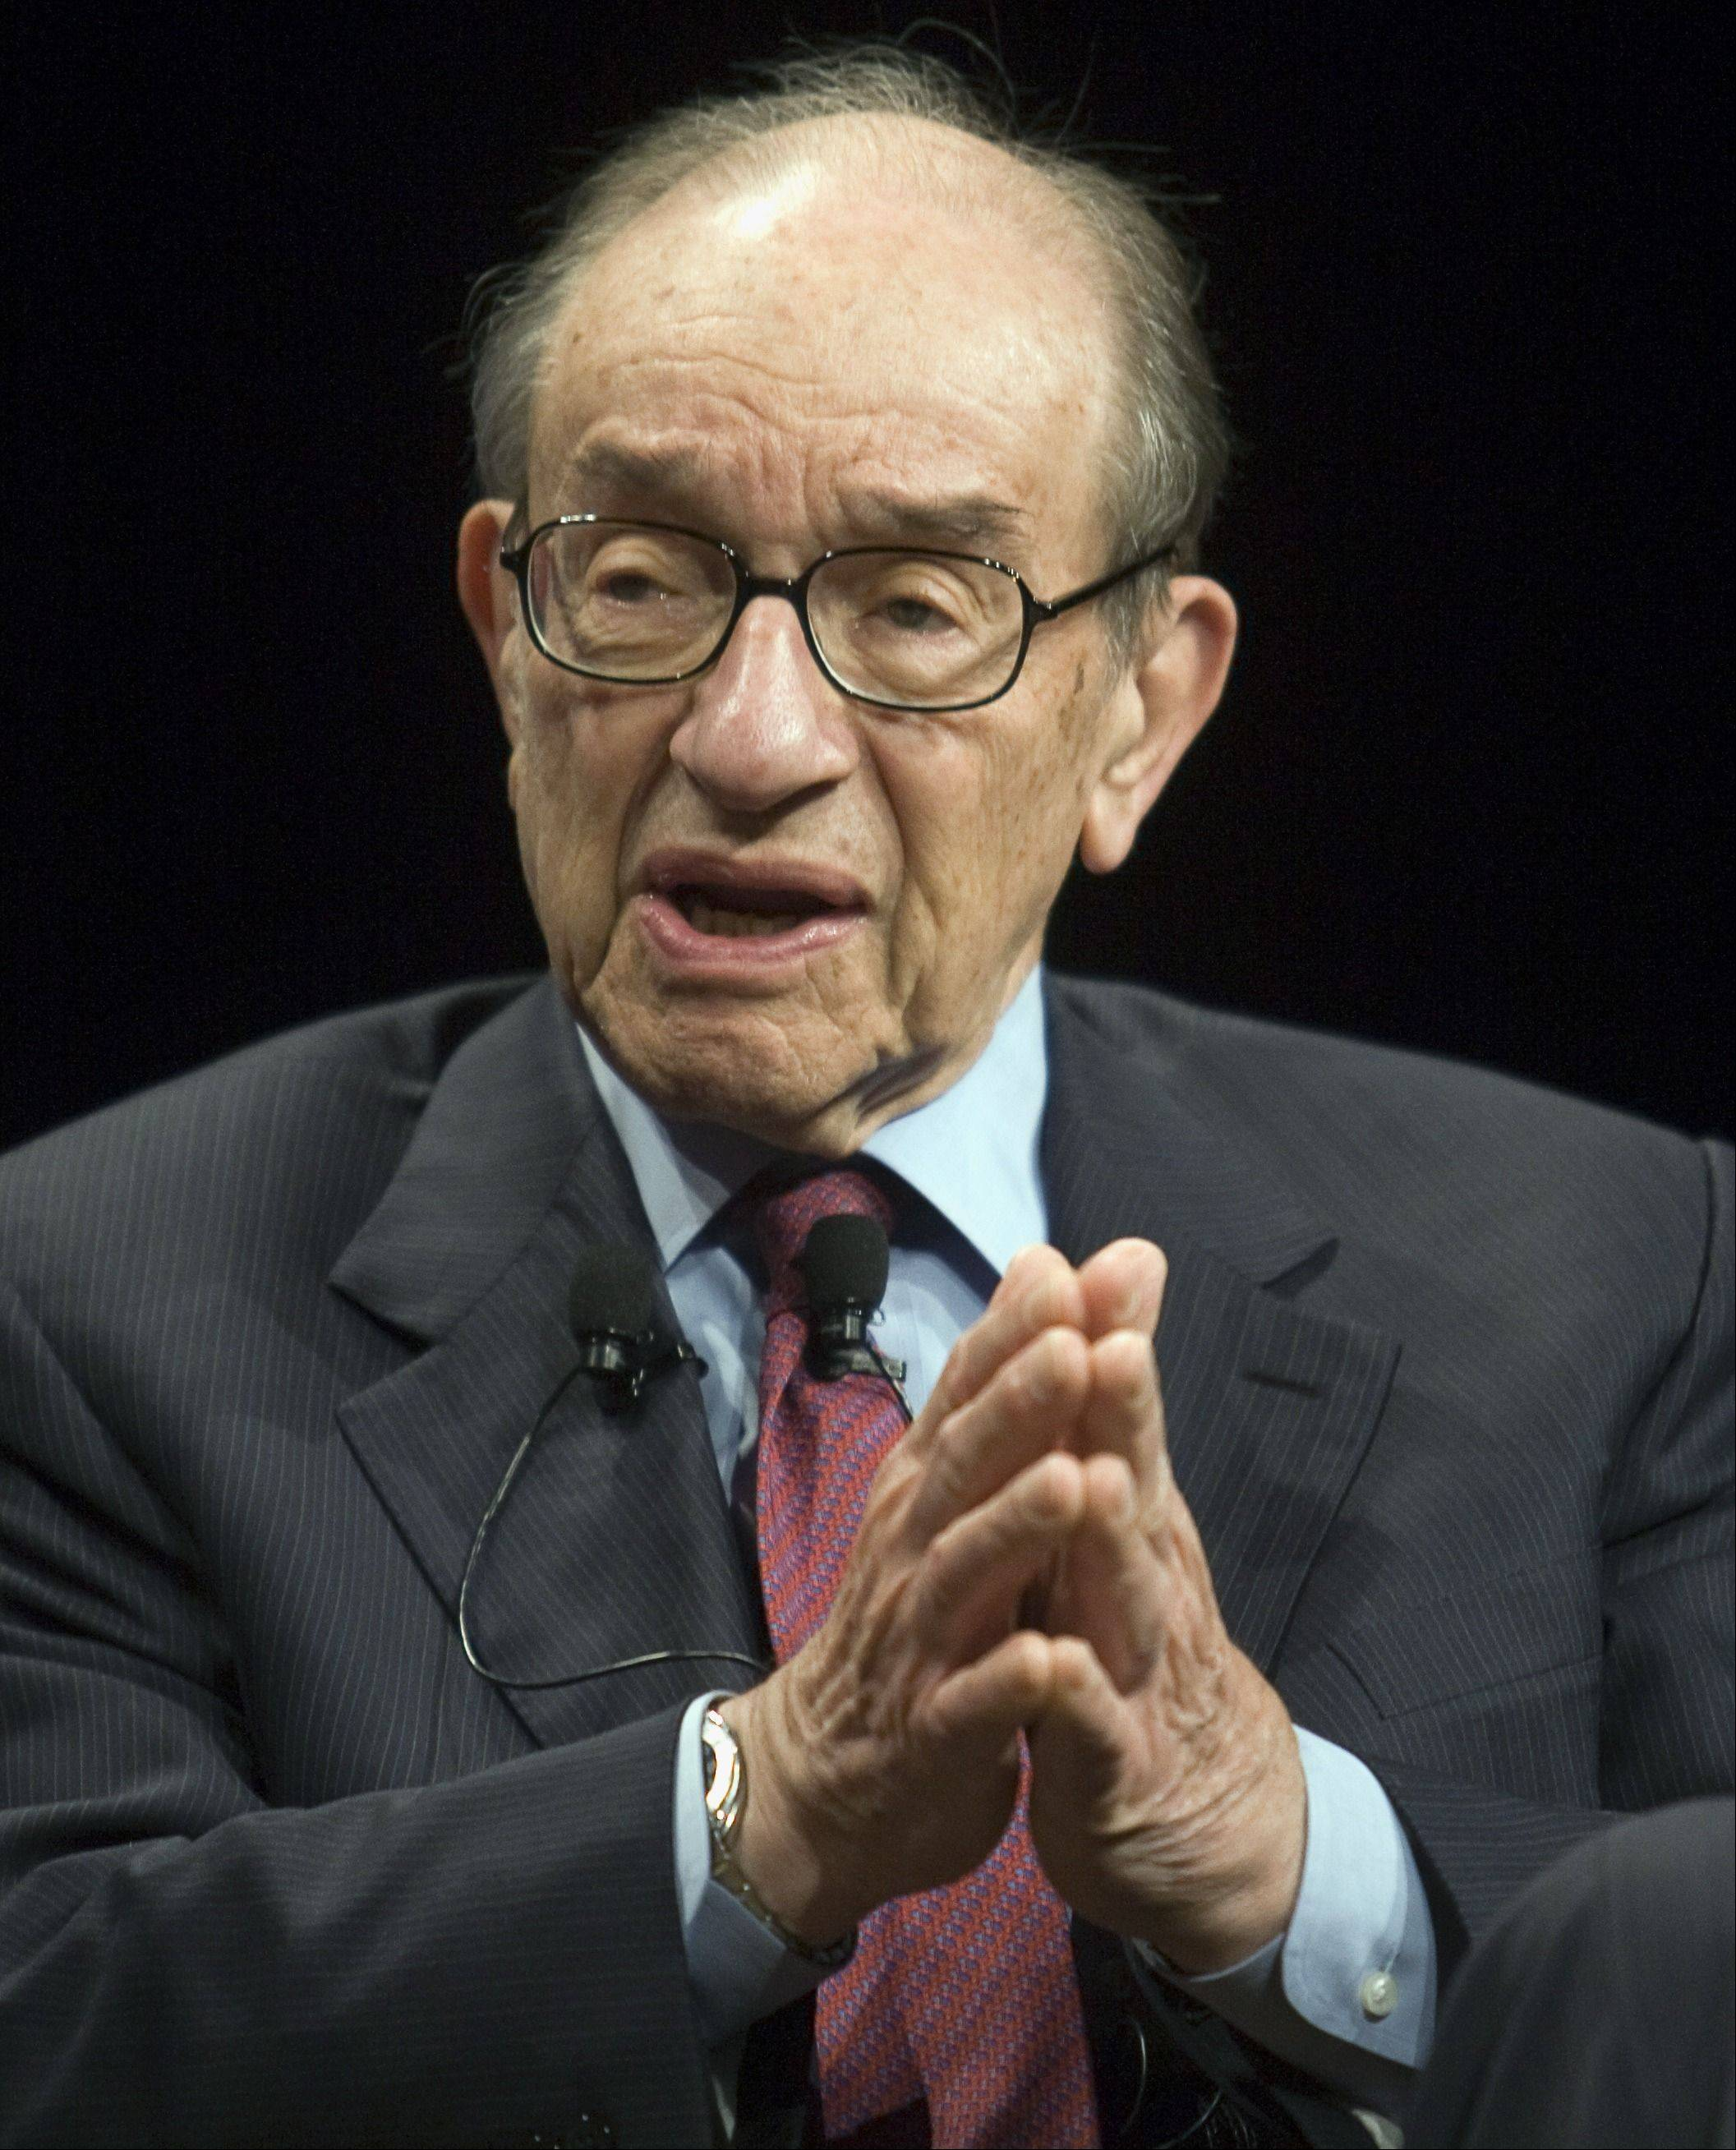 Former Federal Reserve Board Chairman Alan Greenspan expects stocks to continue their decline after Standard & Poor's downgraded the nation's credit rating.